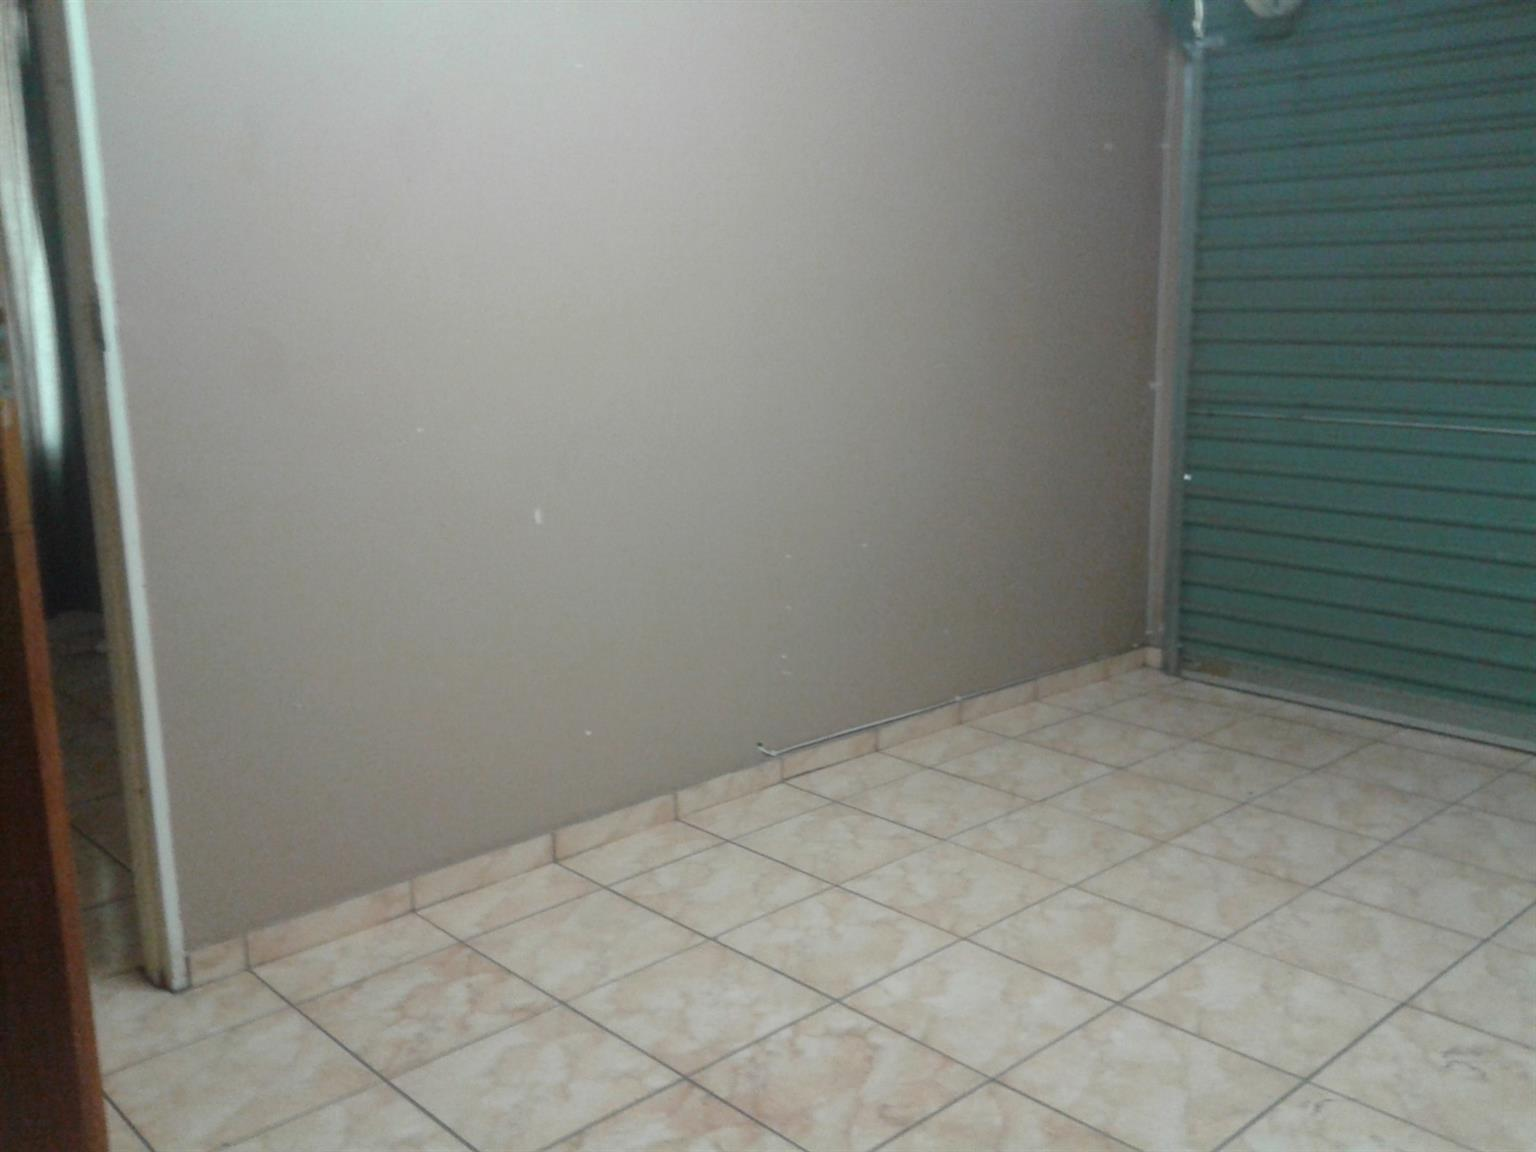 Bachelors Flat fully furnished with lock-up garage for Rent